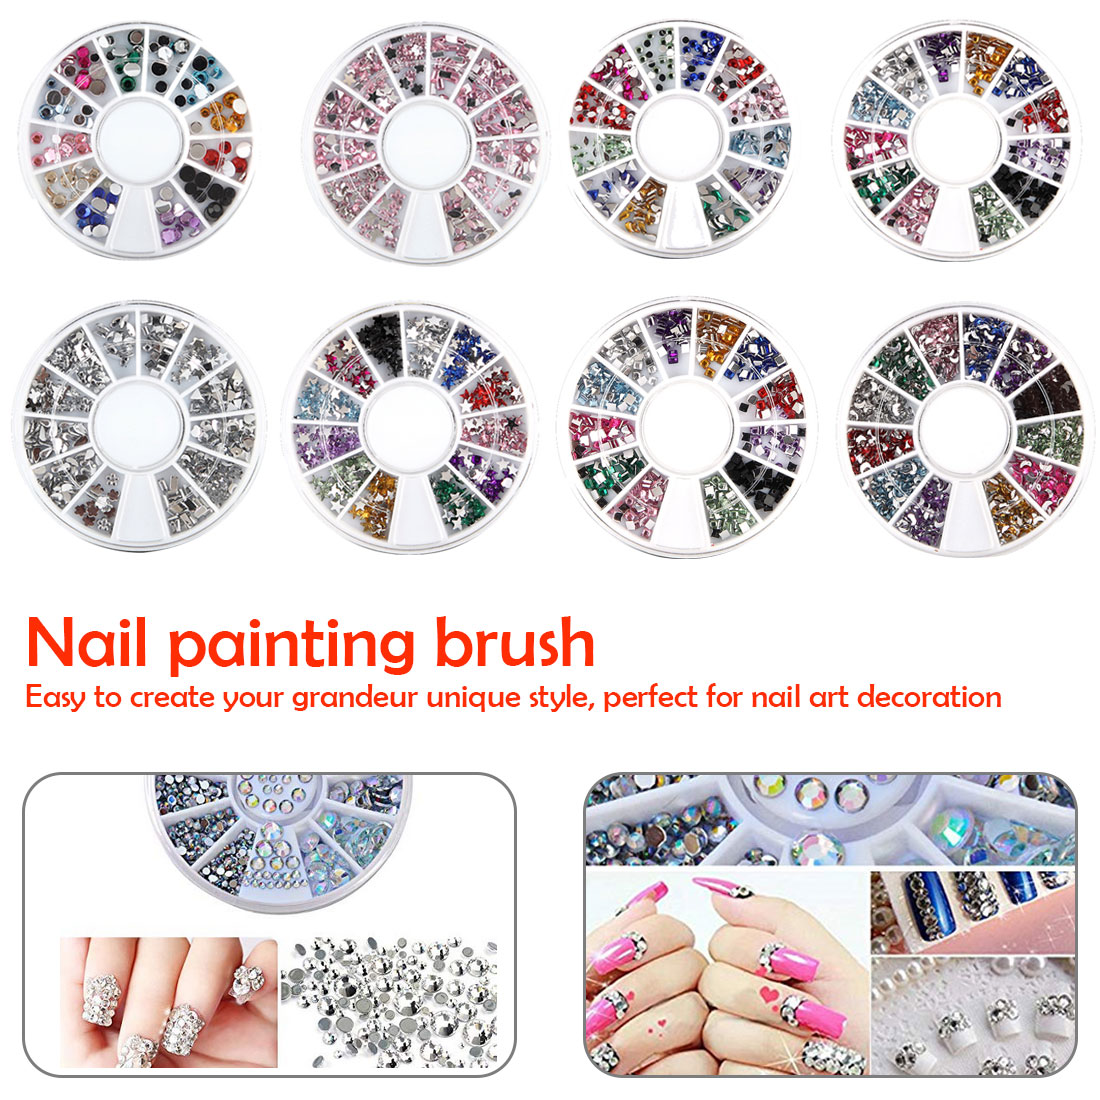 1Pcs/Sell Super Bright Round Ultrathin Sequins Colorful Nail Art Glitter Tips UV Gel 3D Nail Decoration Manicure DIY Accessorie